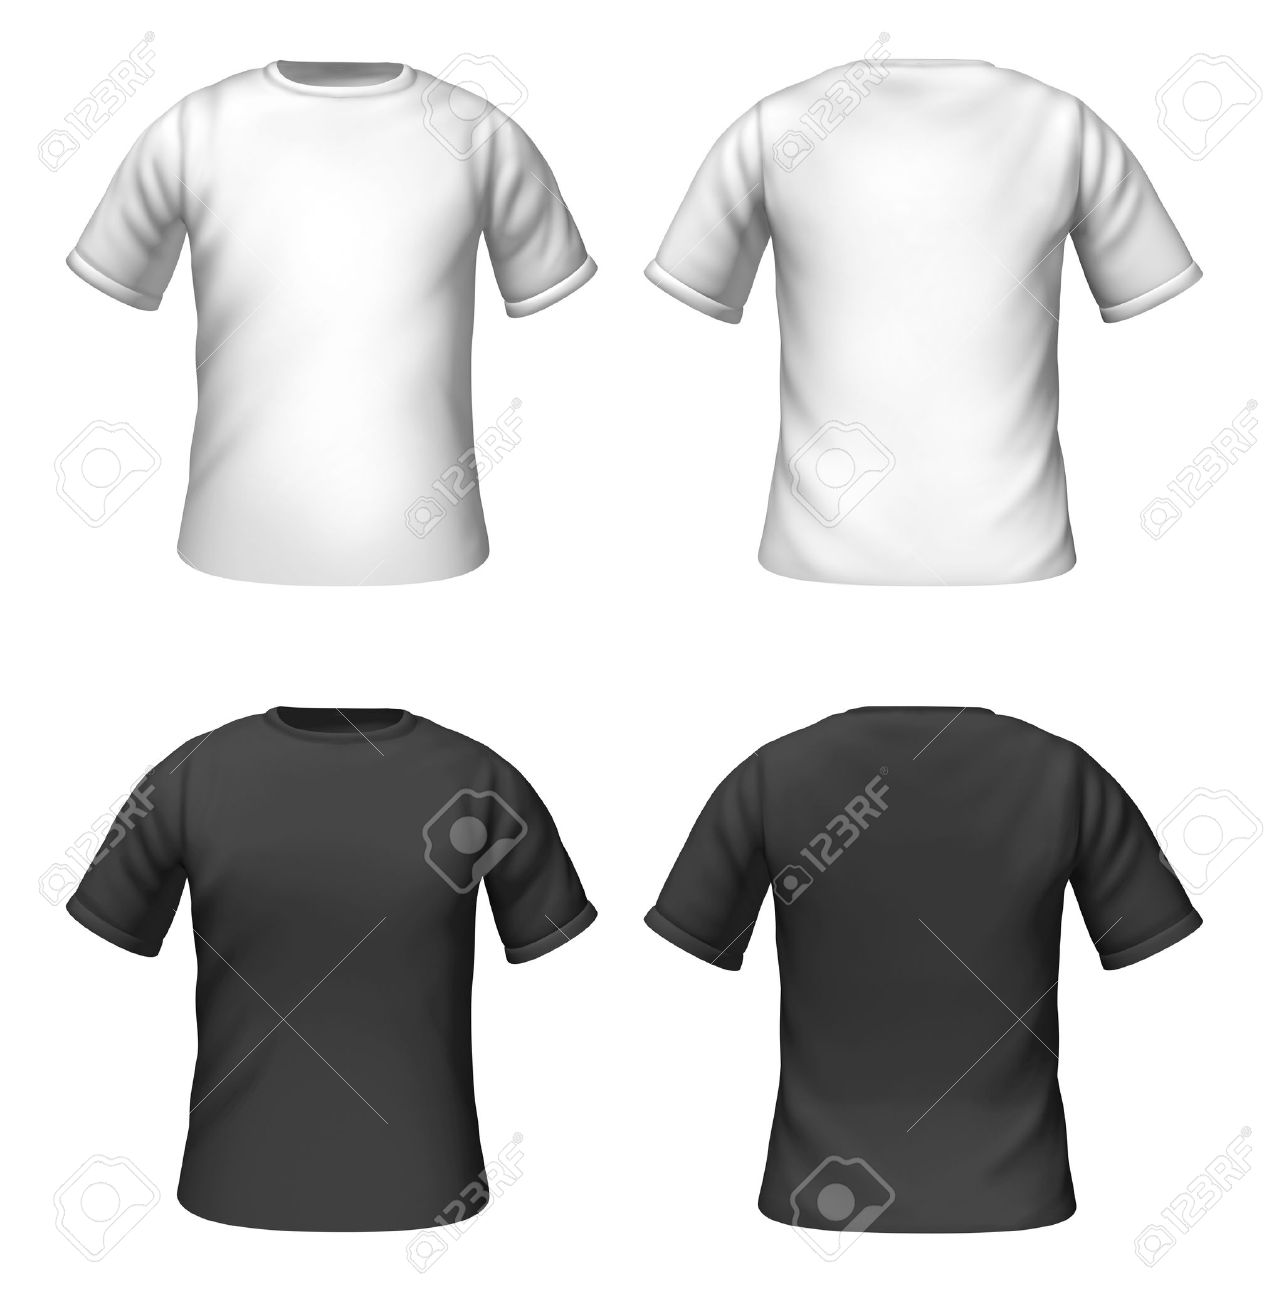 White t shirt front and back template - Blank T Shirts Template With Black And White Colors Representing Front And Back Views Of